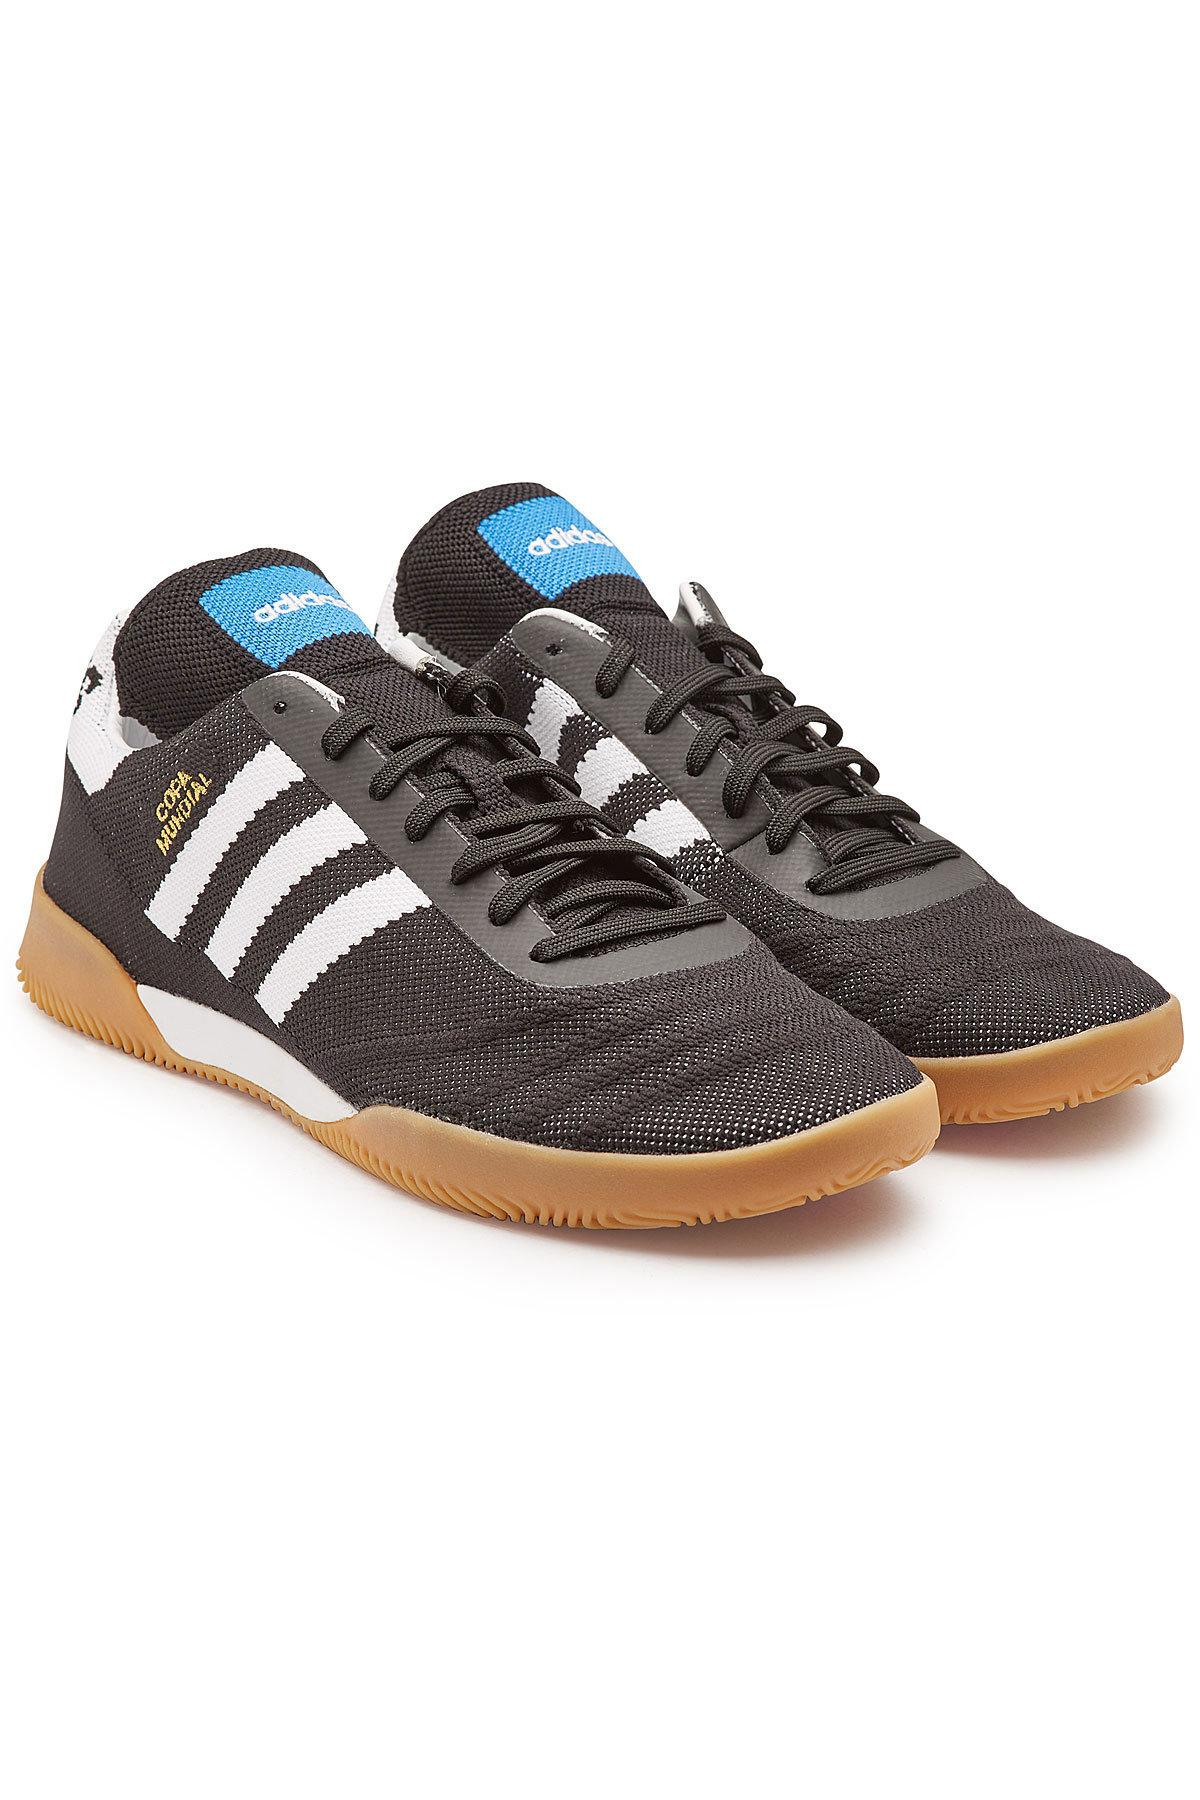 check out d6581 44038 adidas Originals. Men s Copa 70y Tr Sneakers With Mesh